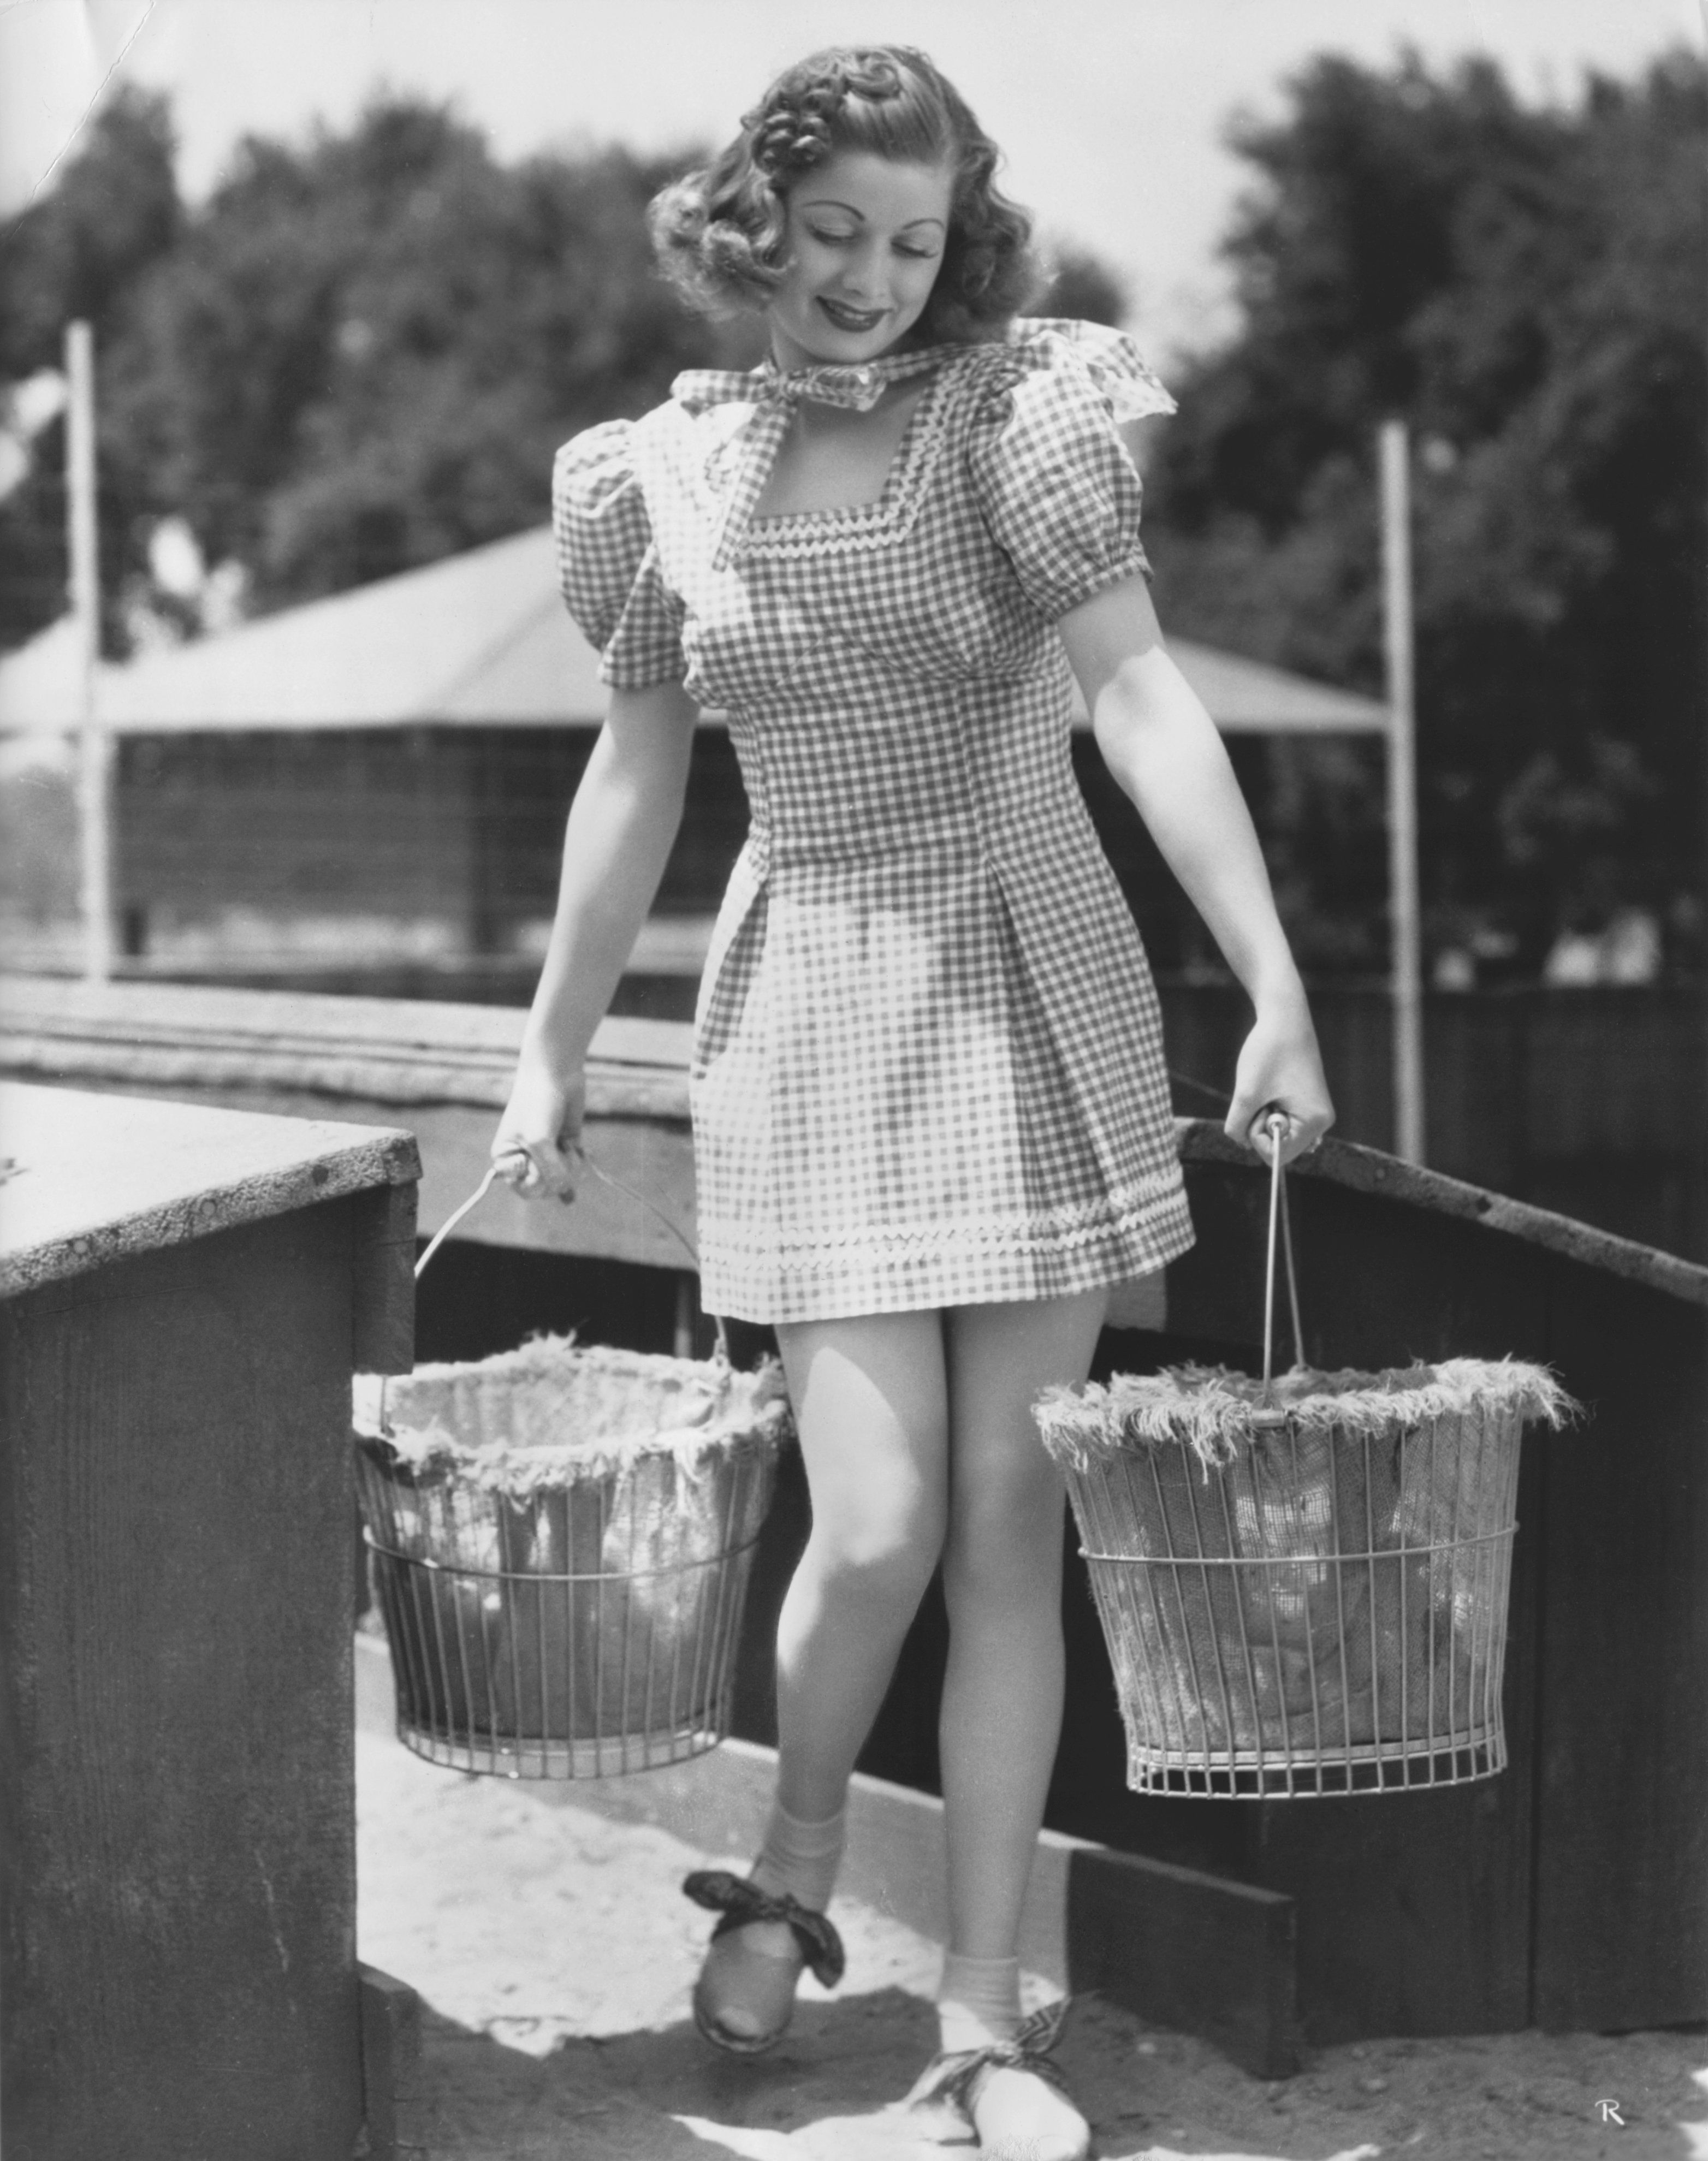 The actress is pictured wearing a gingham dress and carrying egg baskets.